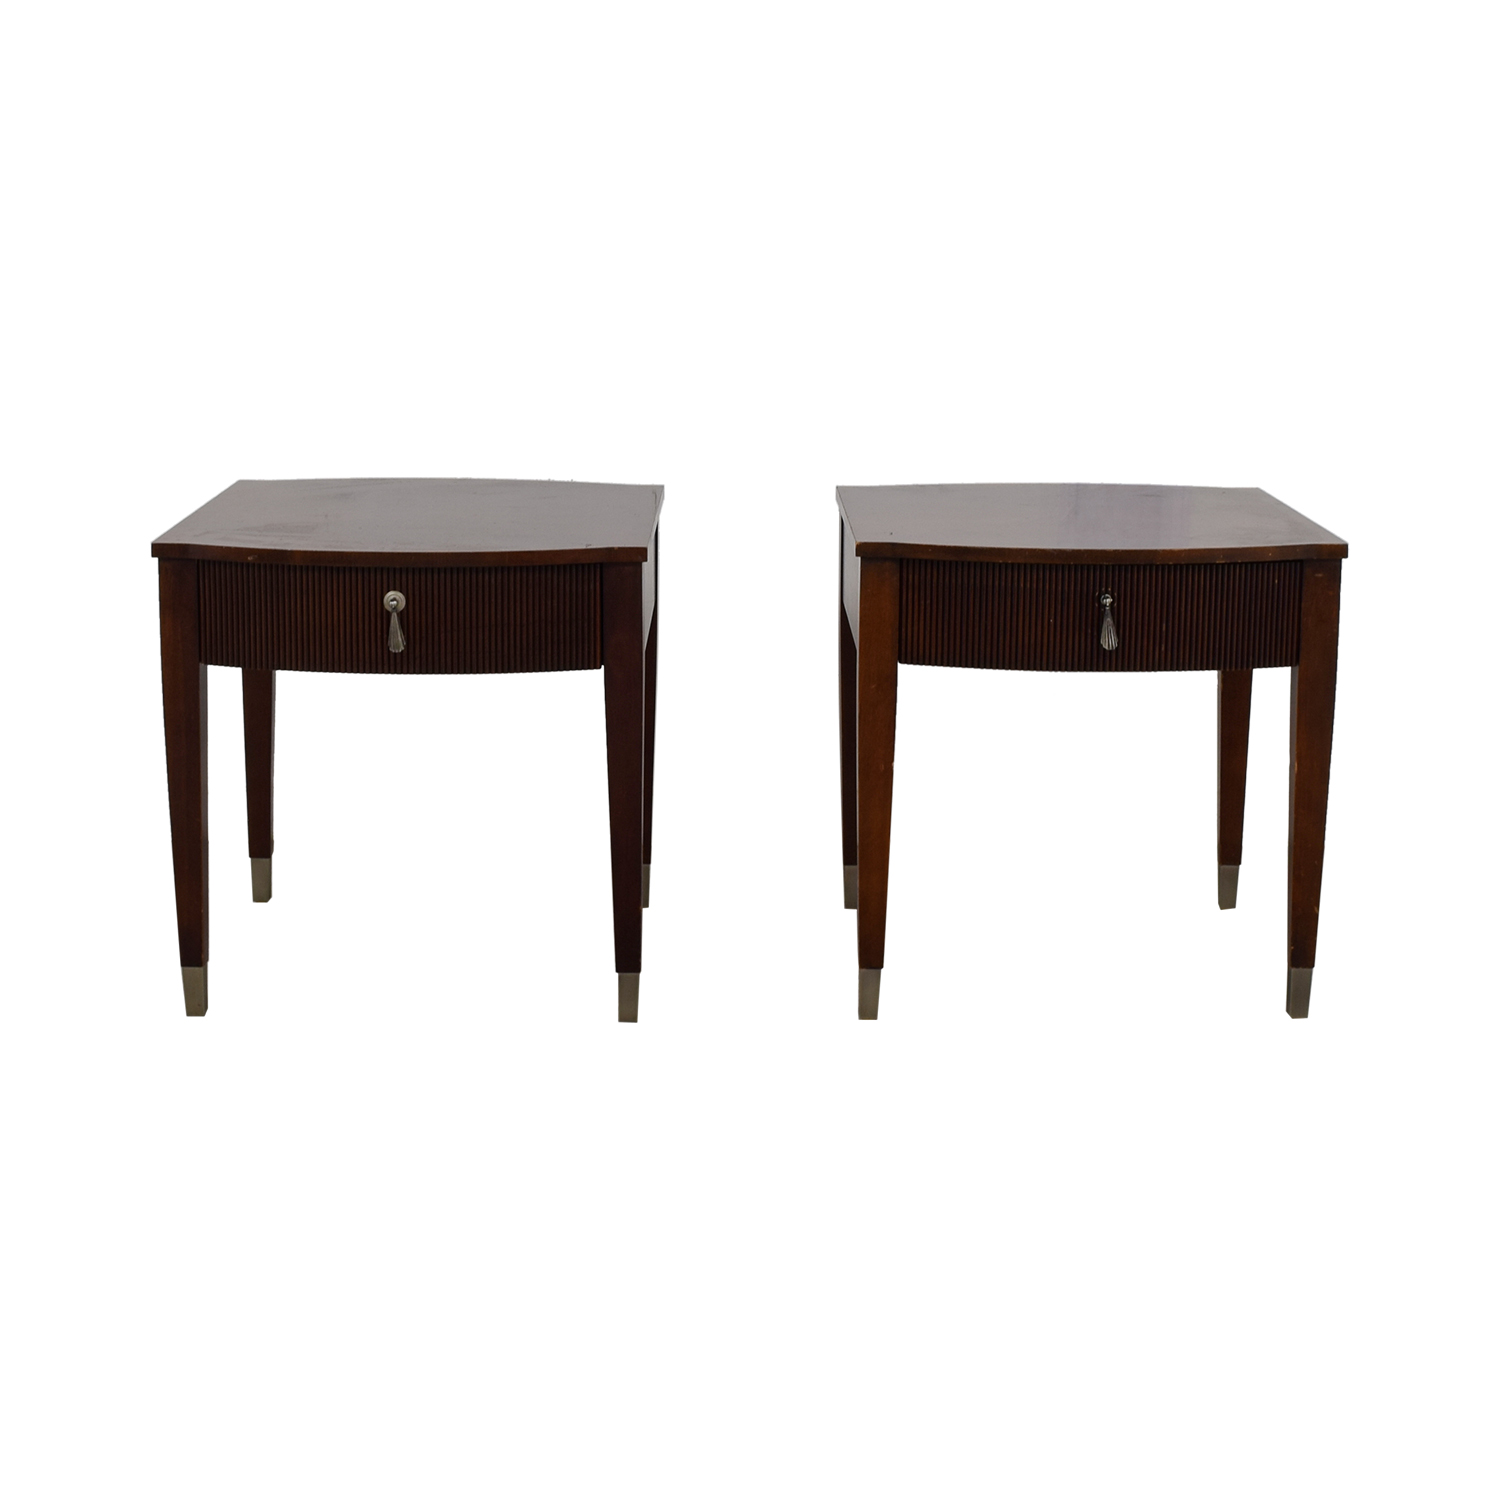 Ethan Allen Ethan Allen Single Drawer End Tables on sale